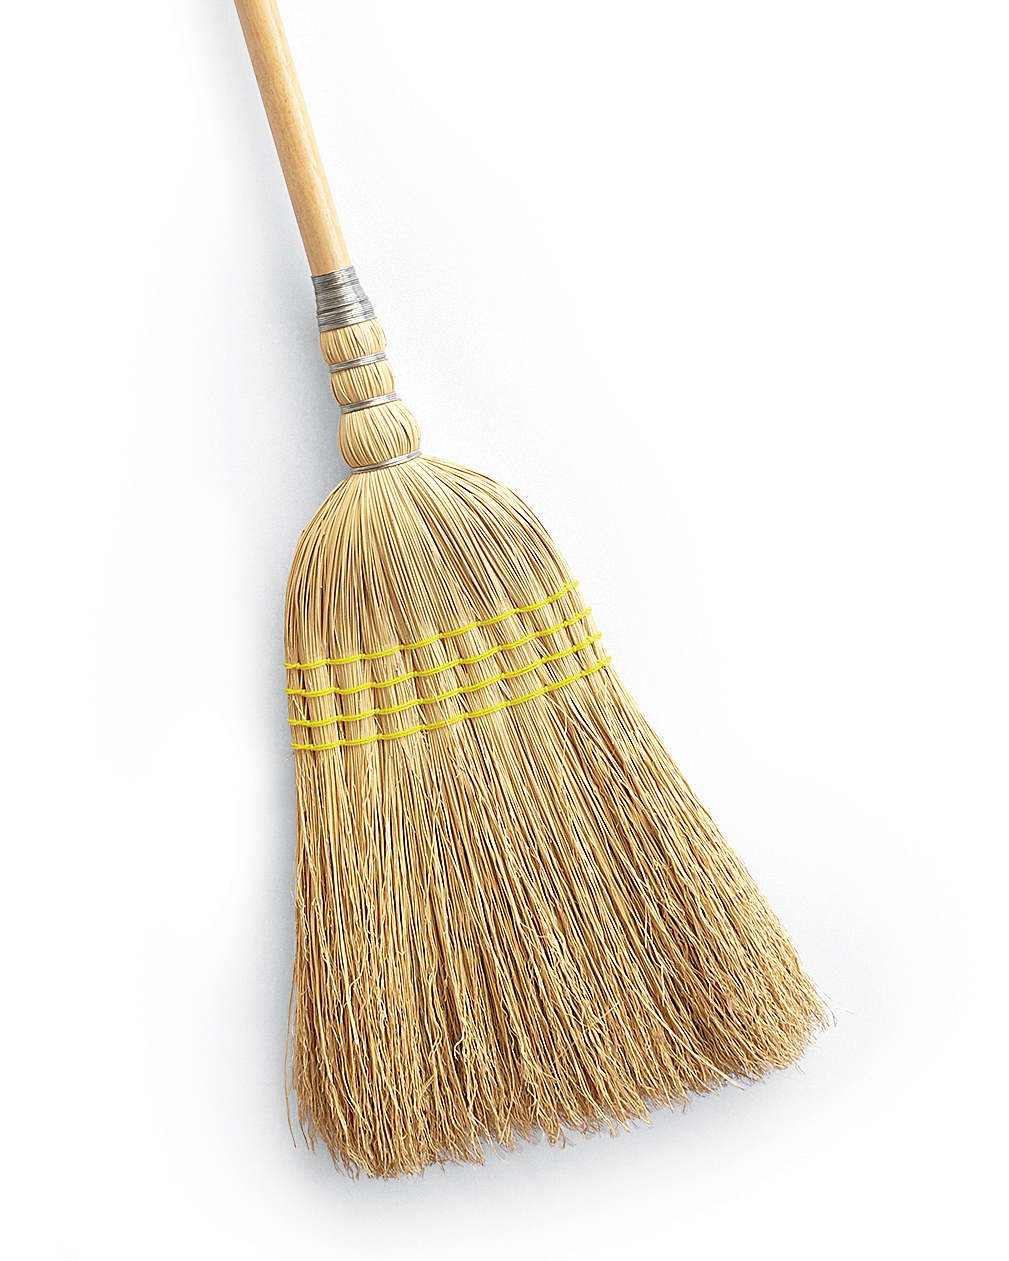 Clean Your Broom